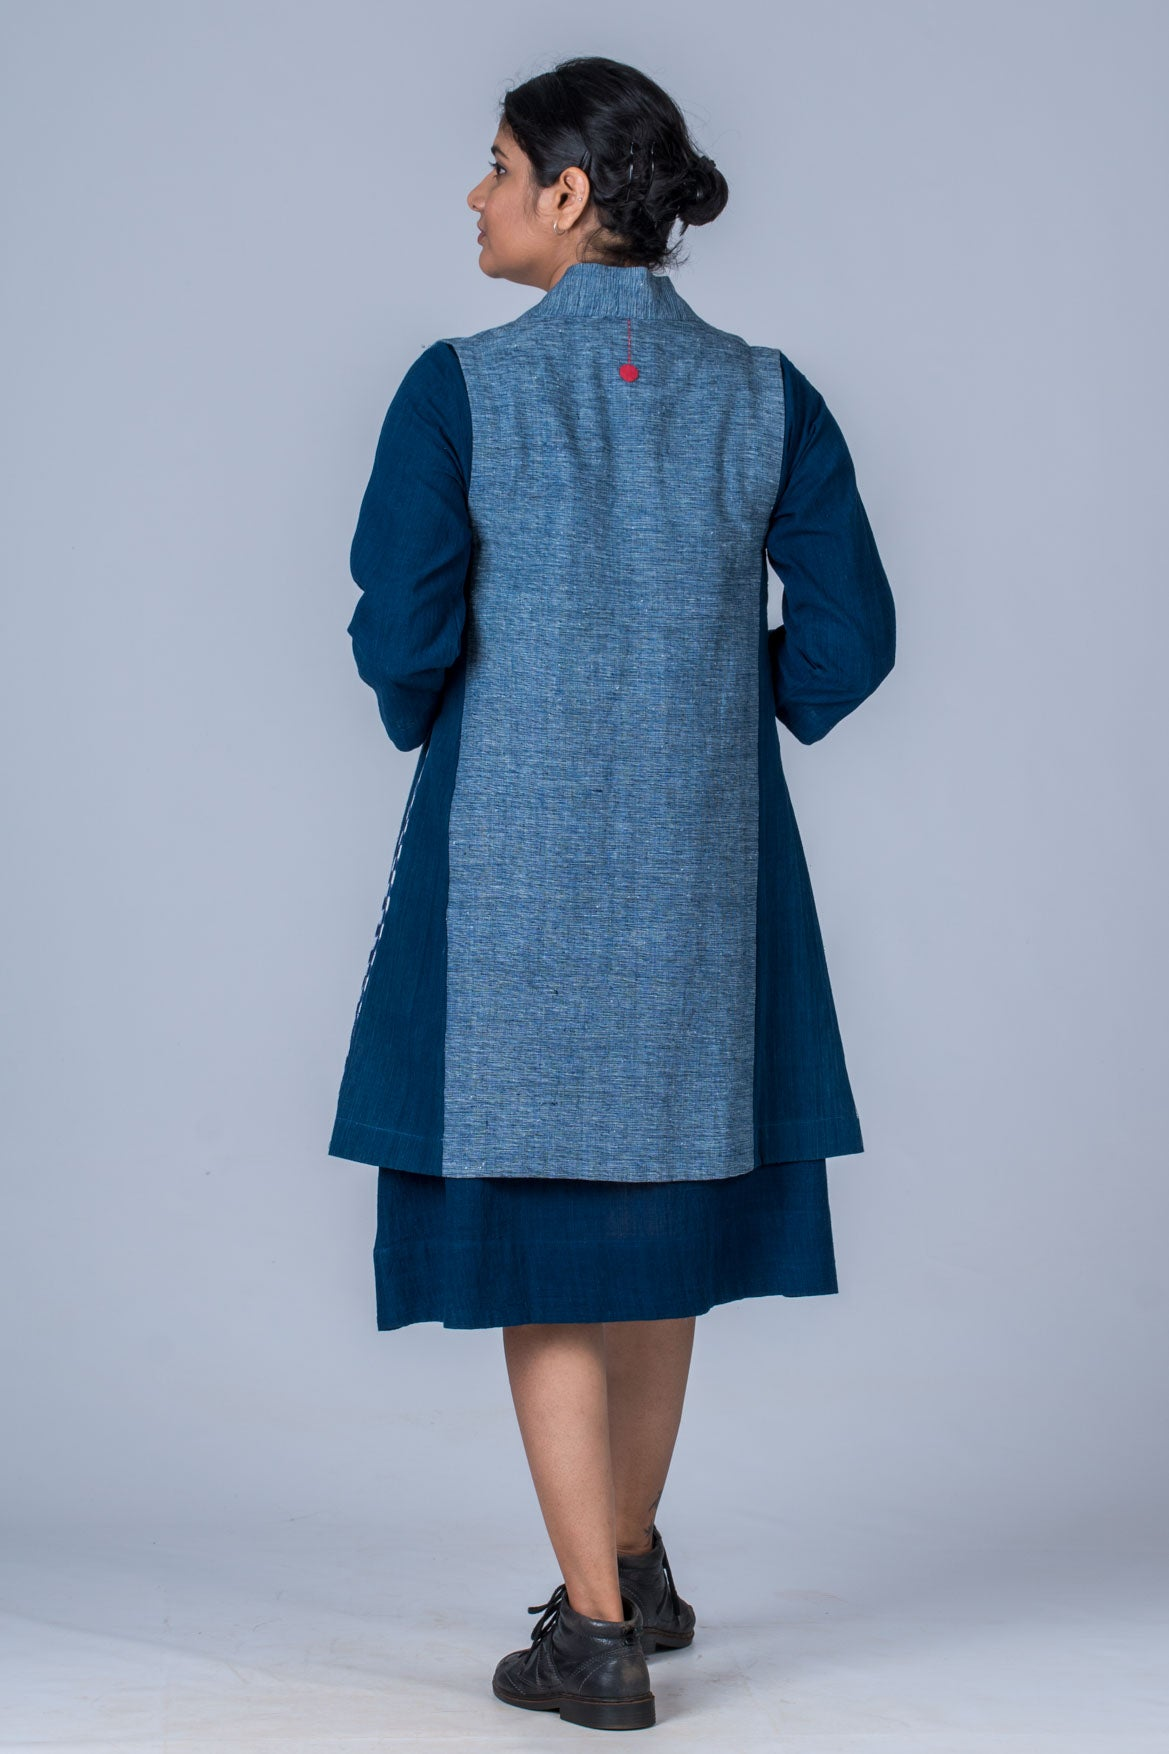 Indigo organic cotton and khadi Jacket - SHIZU - Upasana Design Studio